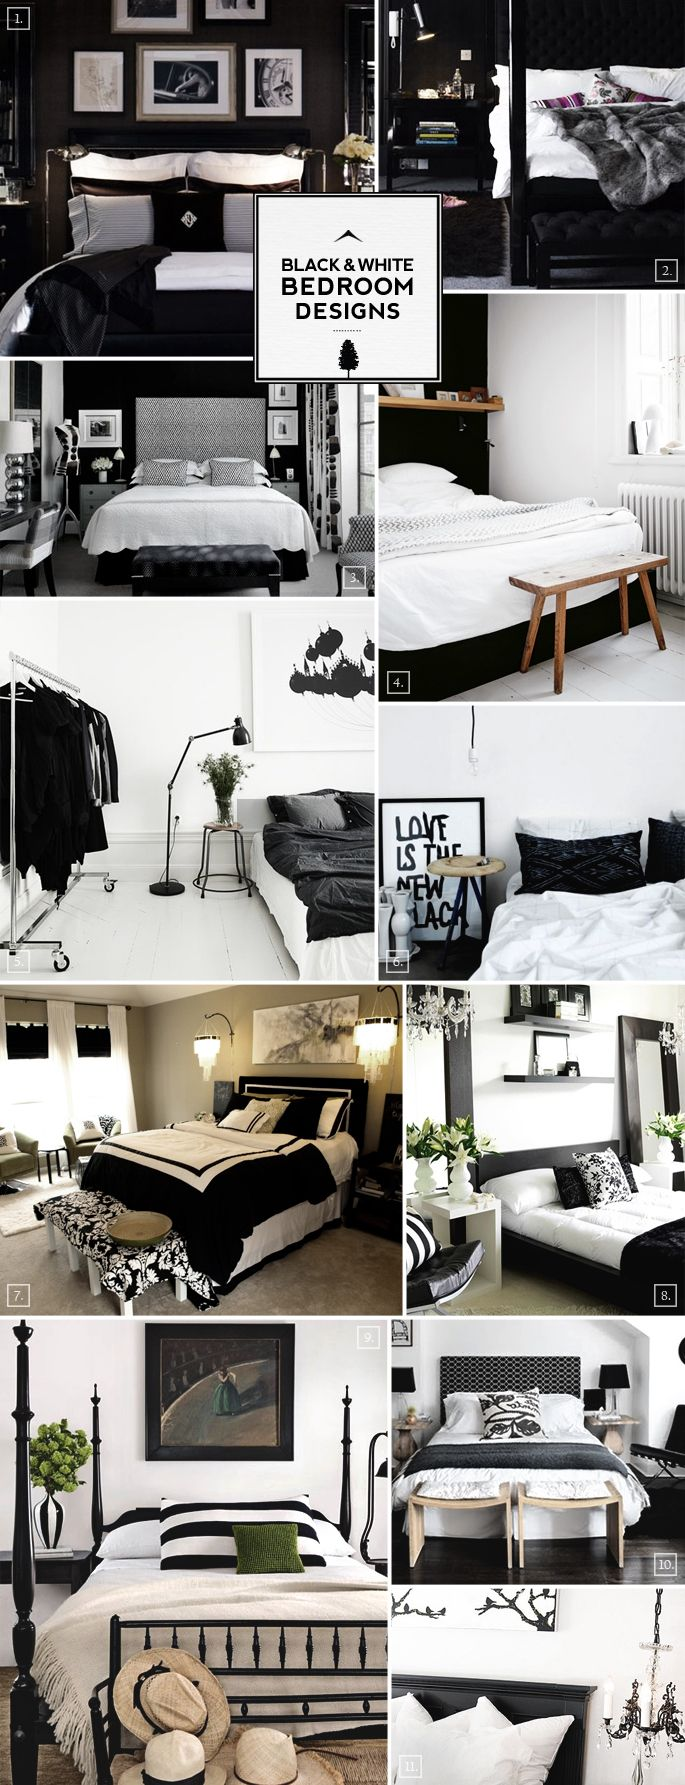 black and white bedroom designs and decor ideas. Interior Design Ideas. Home Design Ideas